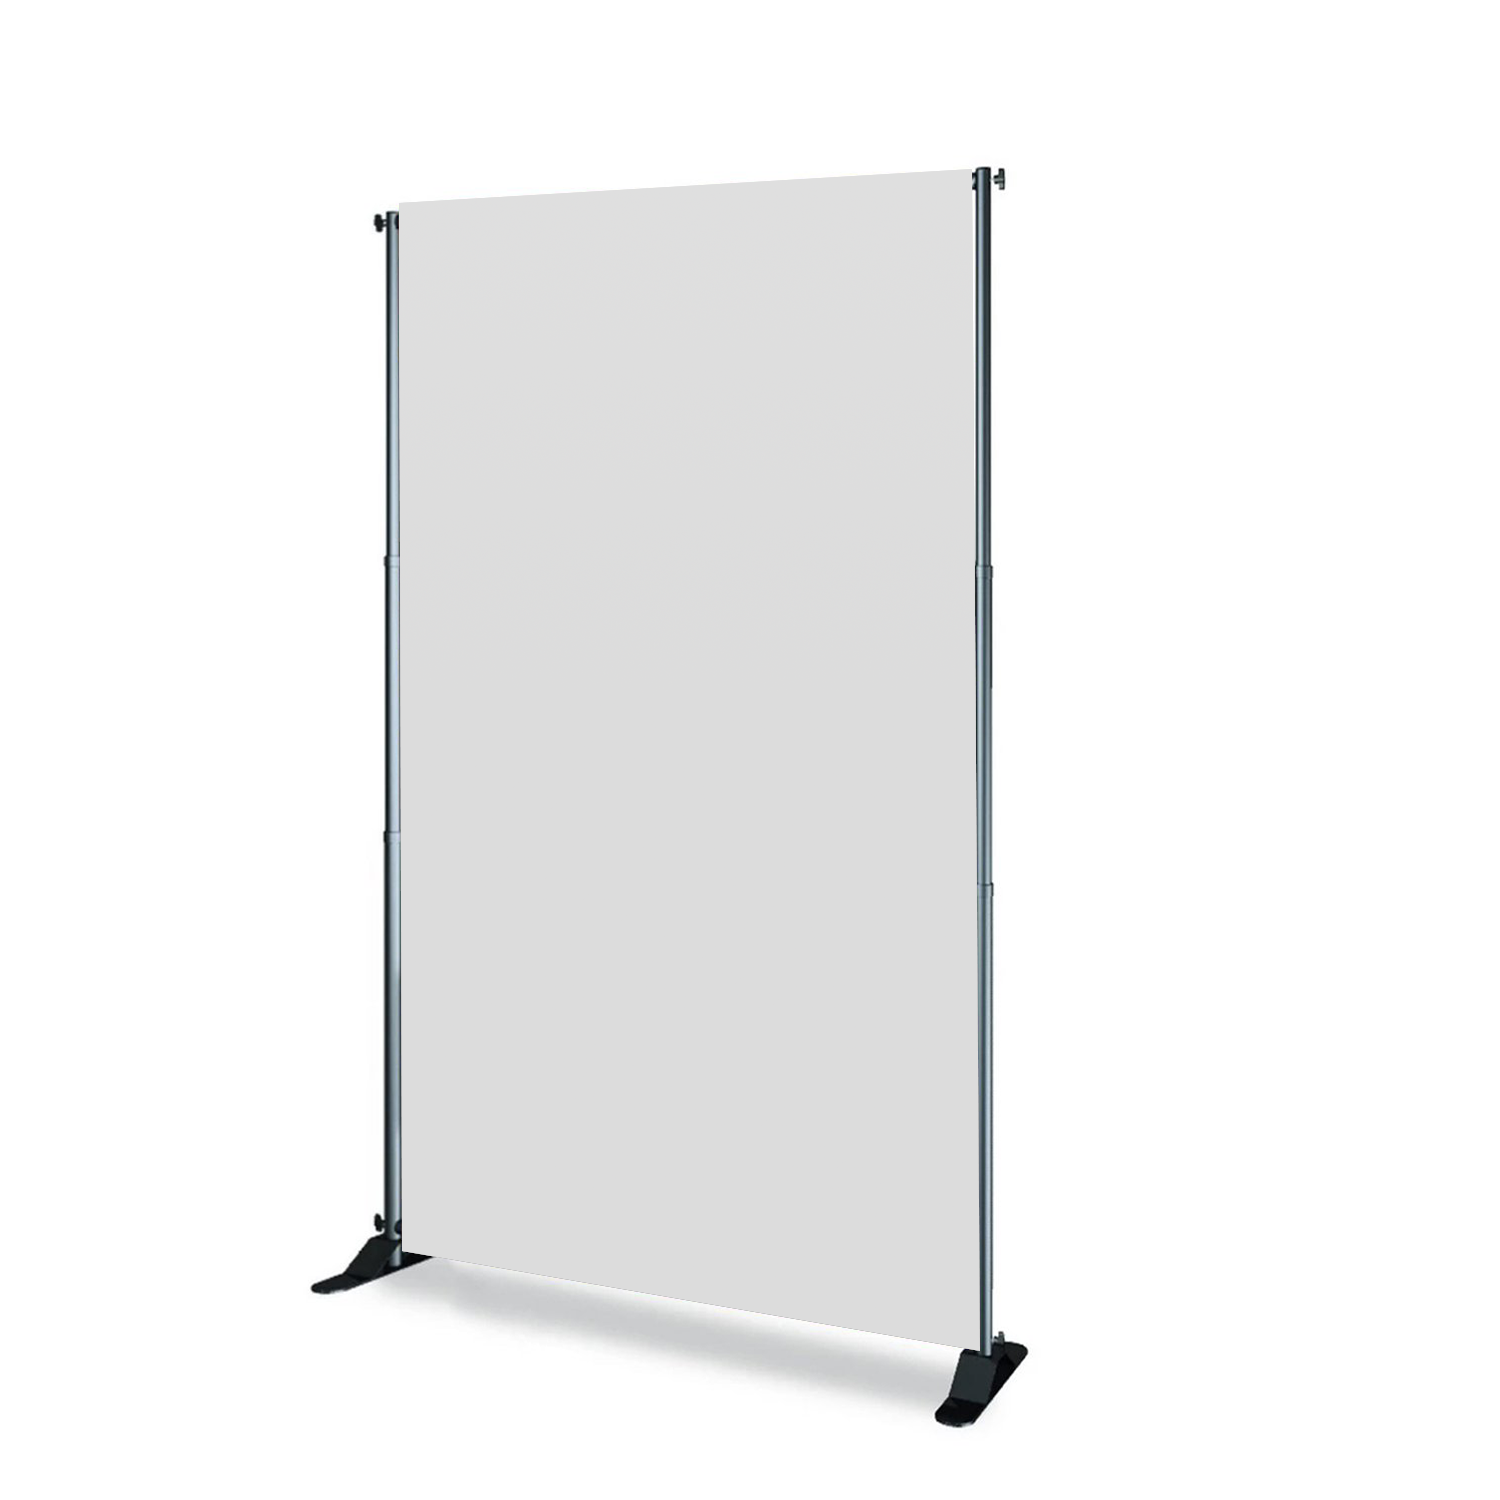 5'x8' Backdrop Replacement Graphic Banner Only (C/R)